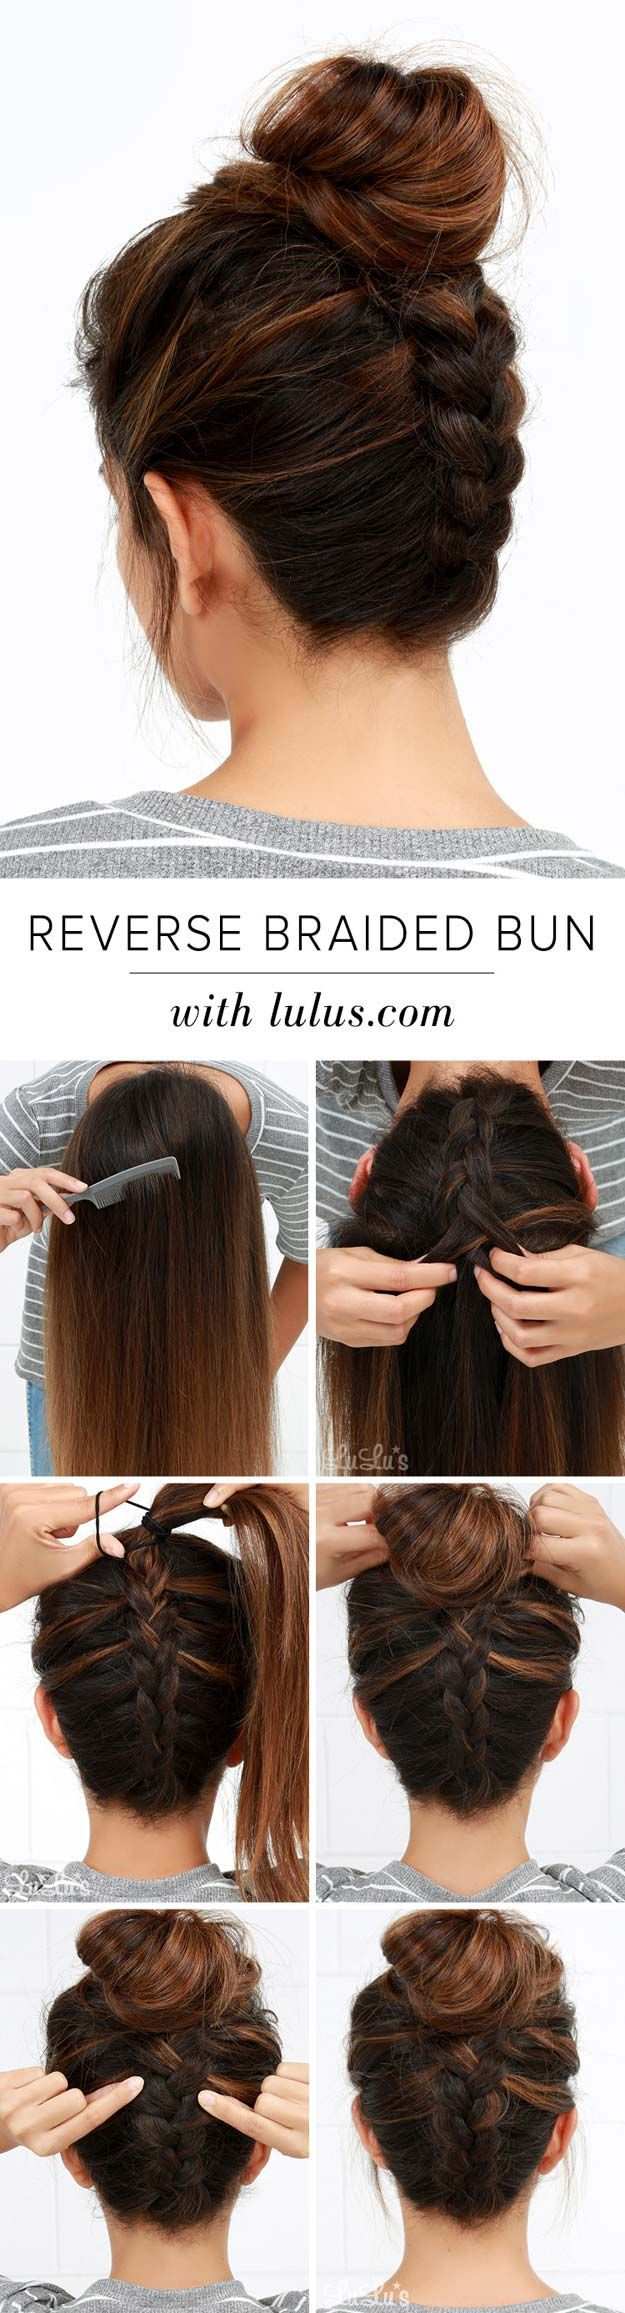 Cool and Easy DIY Hairstyles - Reversed Braided Bun - Quick and Easy Ideas for B...